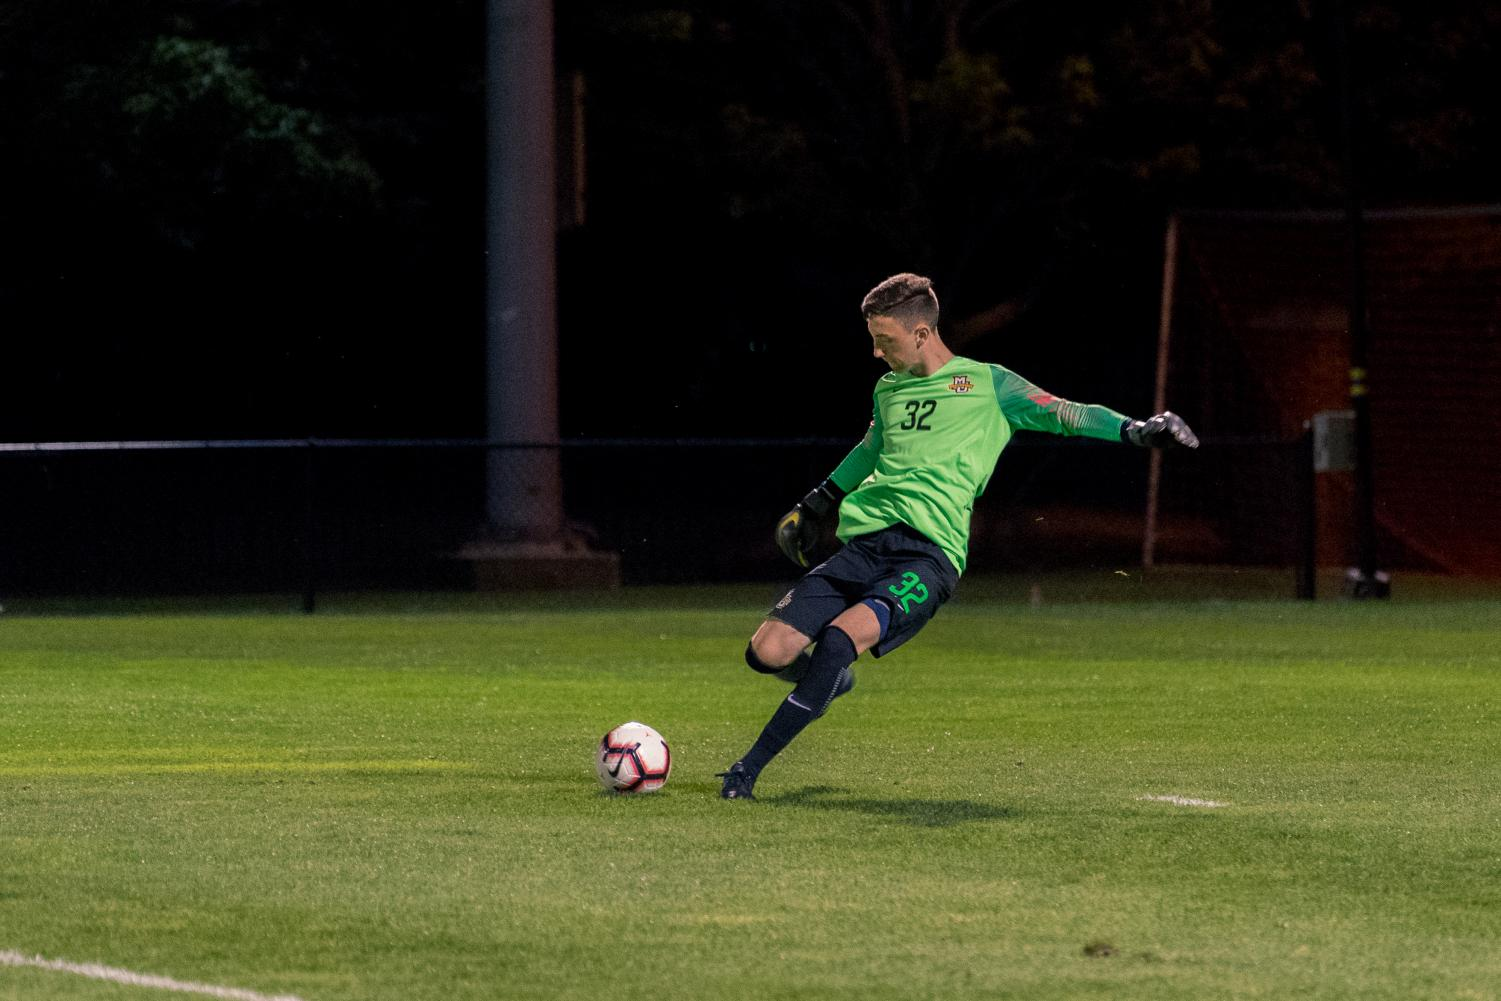 Jackson Weyman fires a goal kick in Marquette's exhibition win over Notre Dame in August.